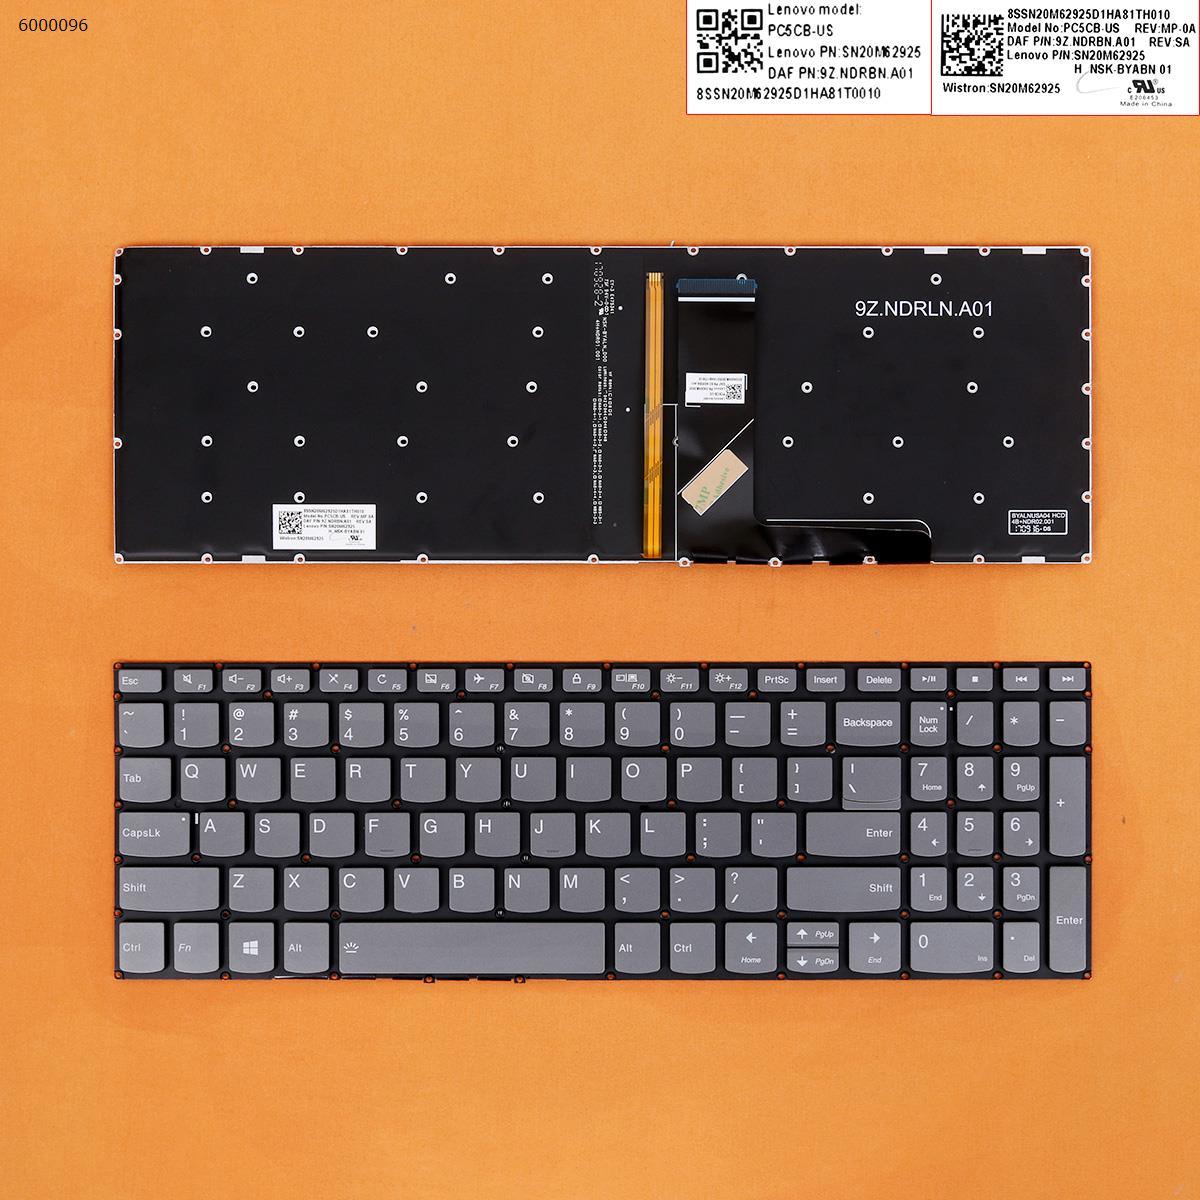 US QWERTY New Replacement Keyboard for Lenovo Ideapad 320-17IKB 320-17ISK 320-17AST 320-17ABR Laptop Gray with Backlit NO Frame